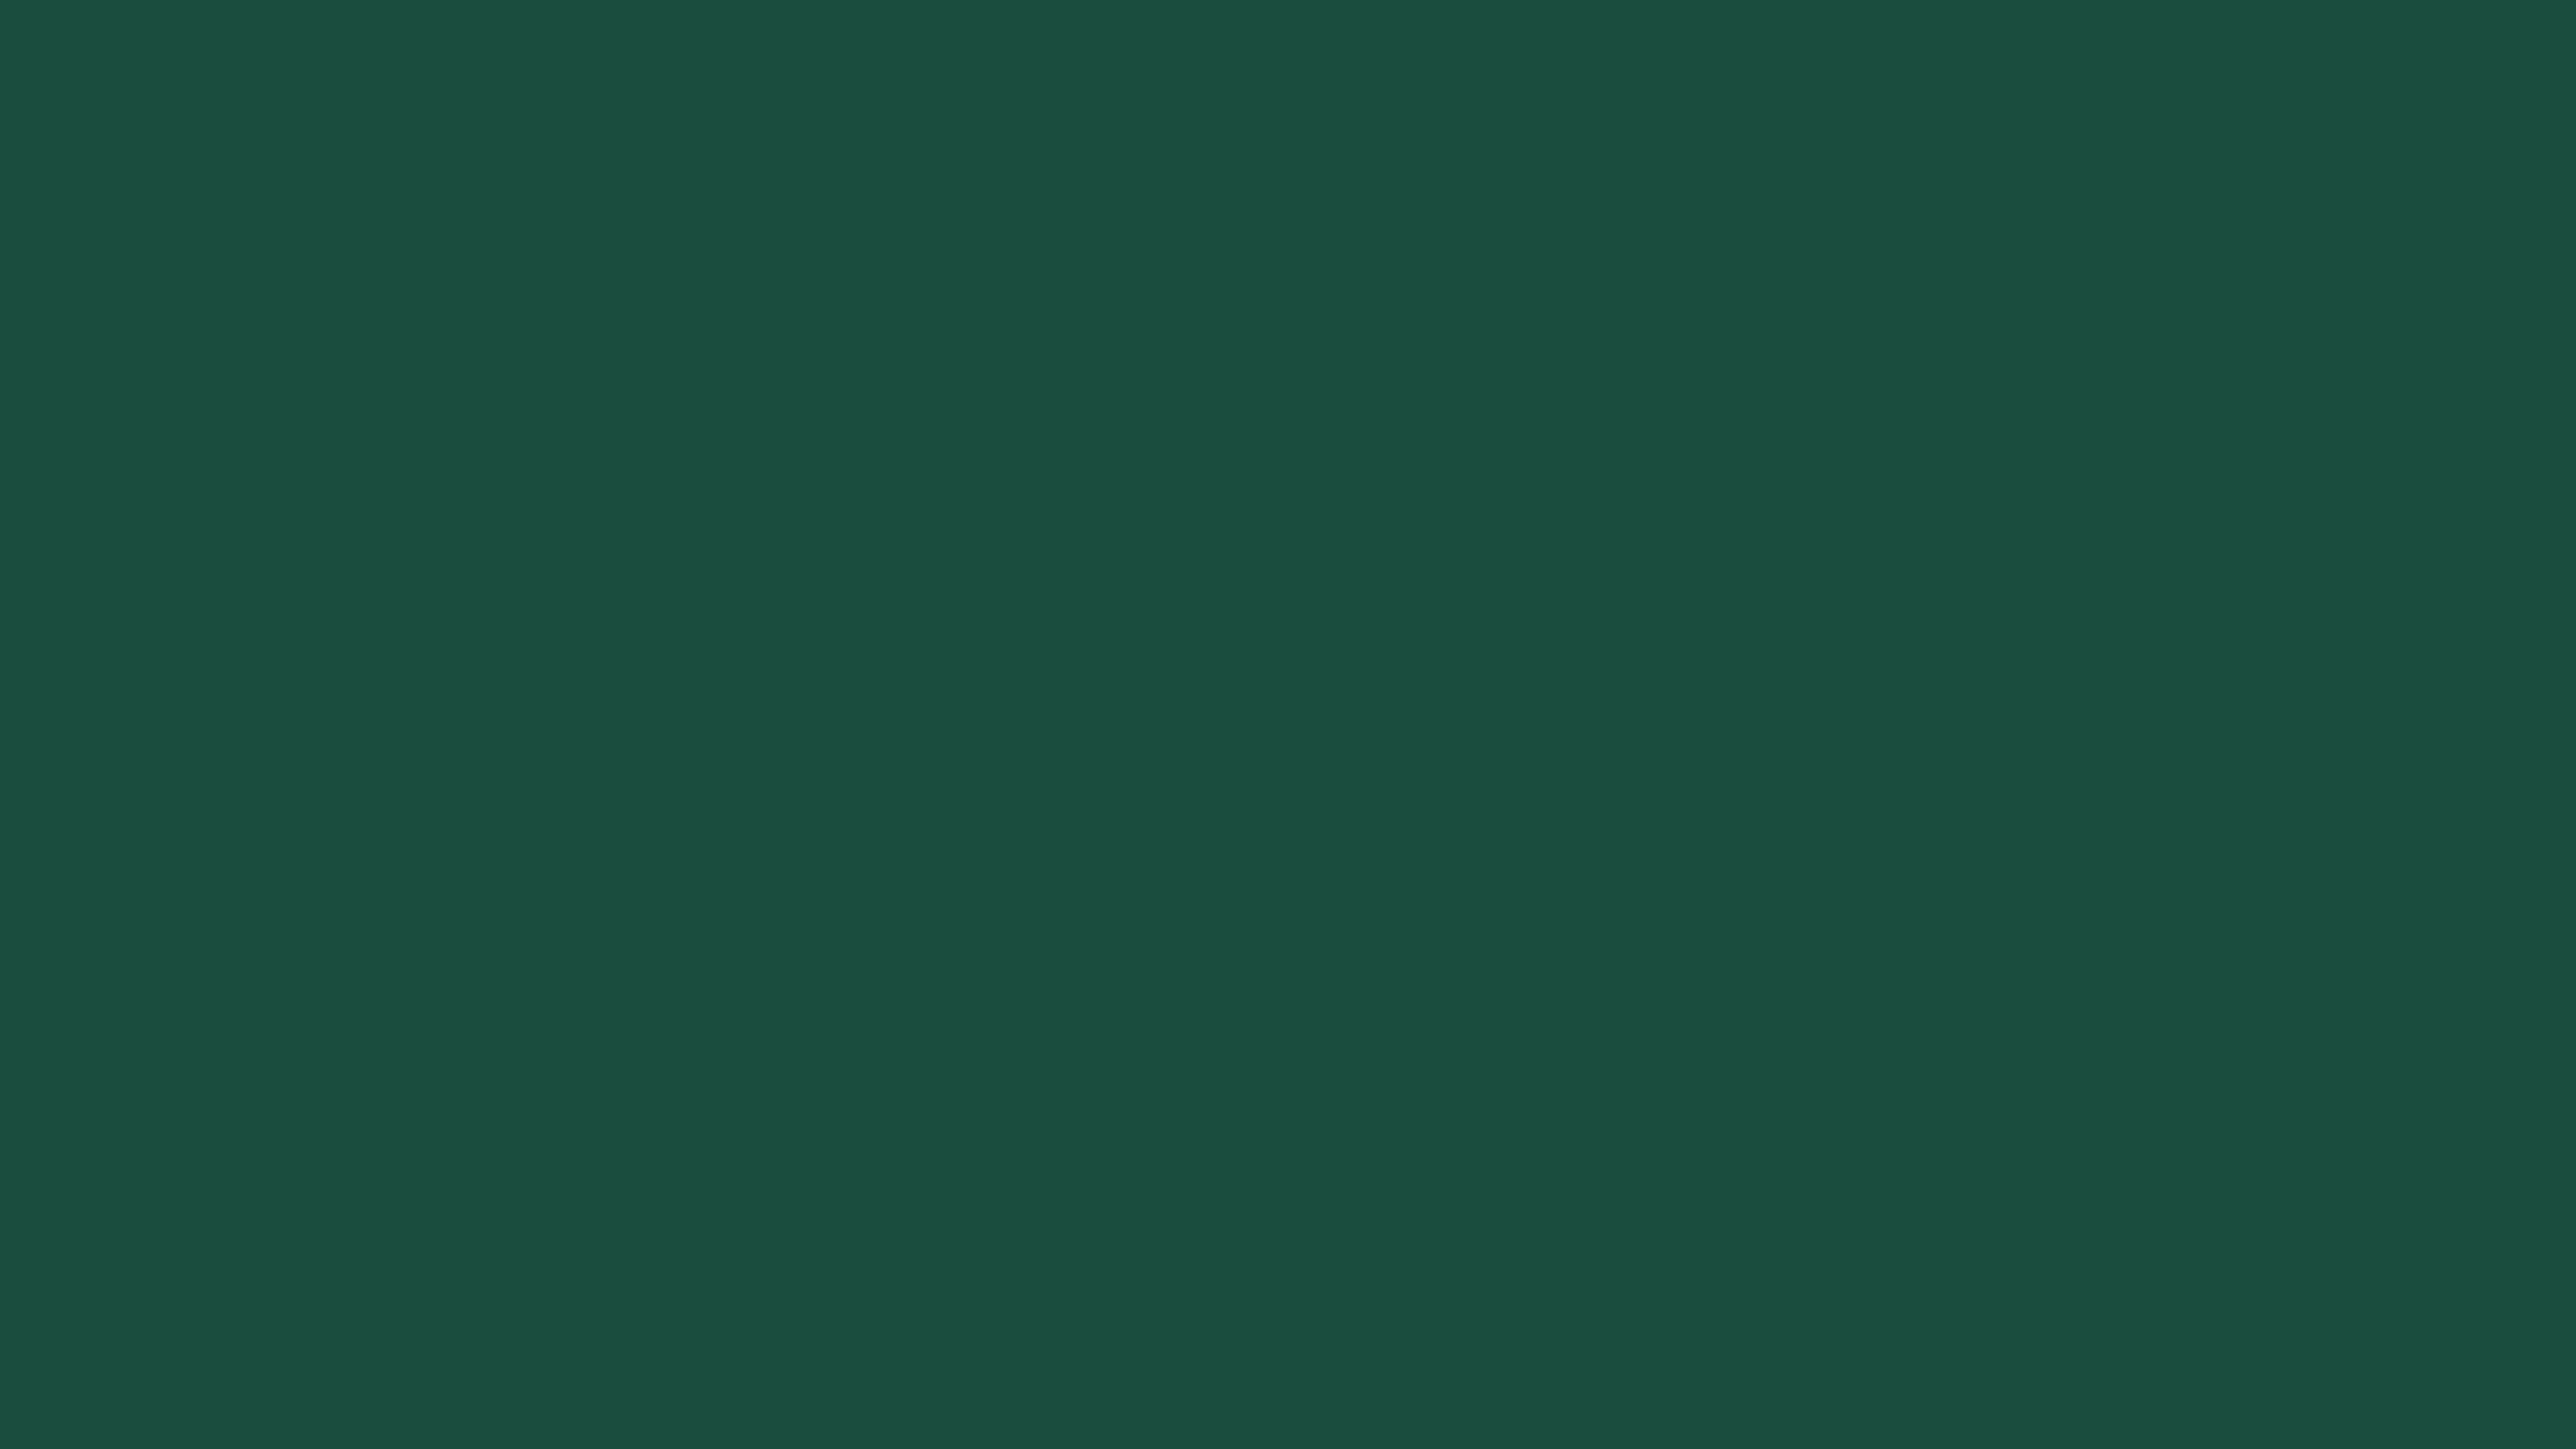 5120x2880 English Green Solid Color Background